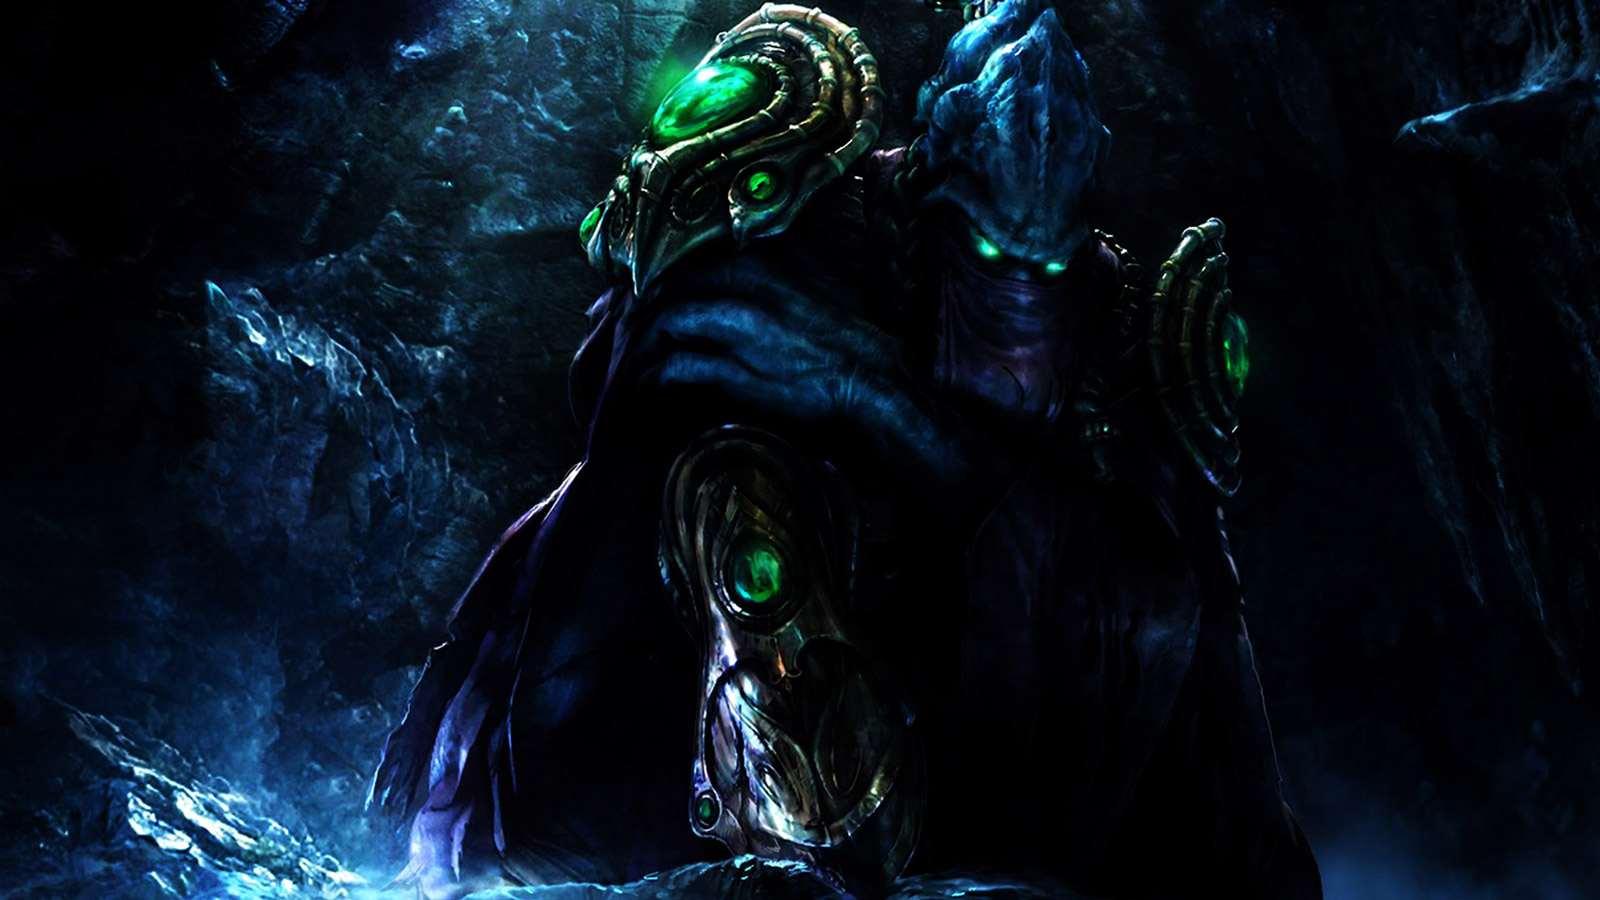 Free Starcraft 2 Wallpaper in 1600x900